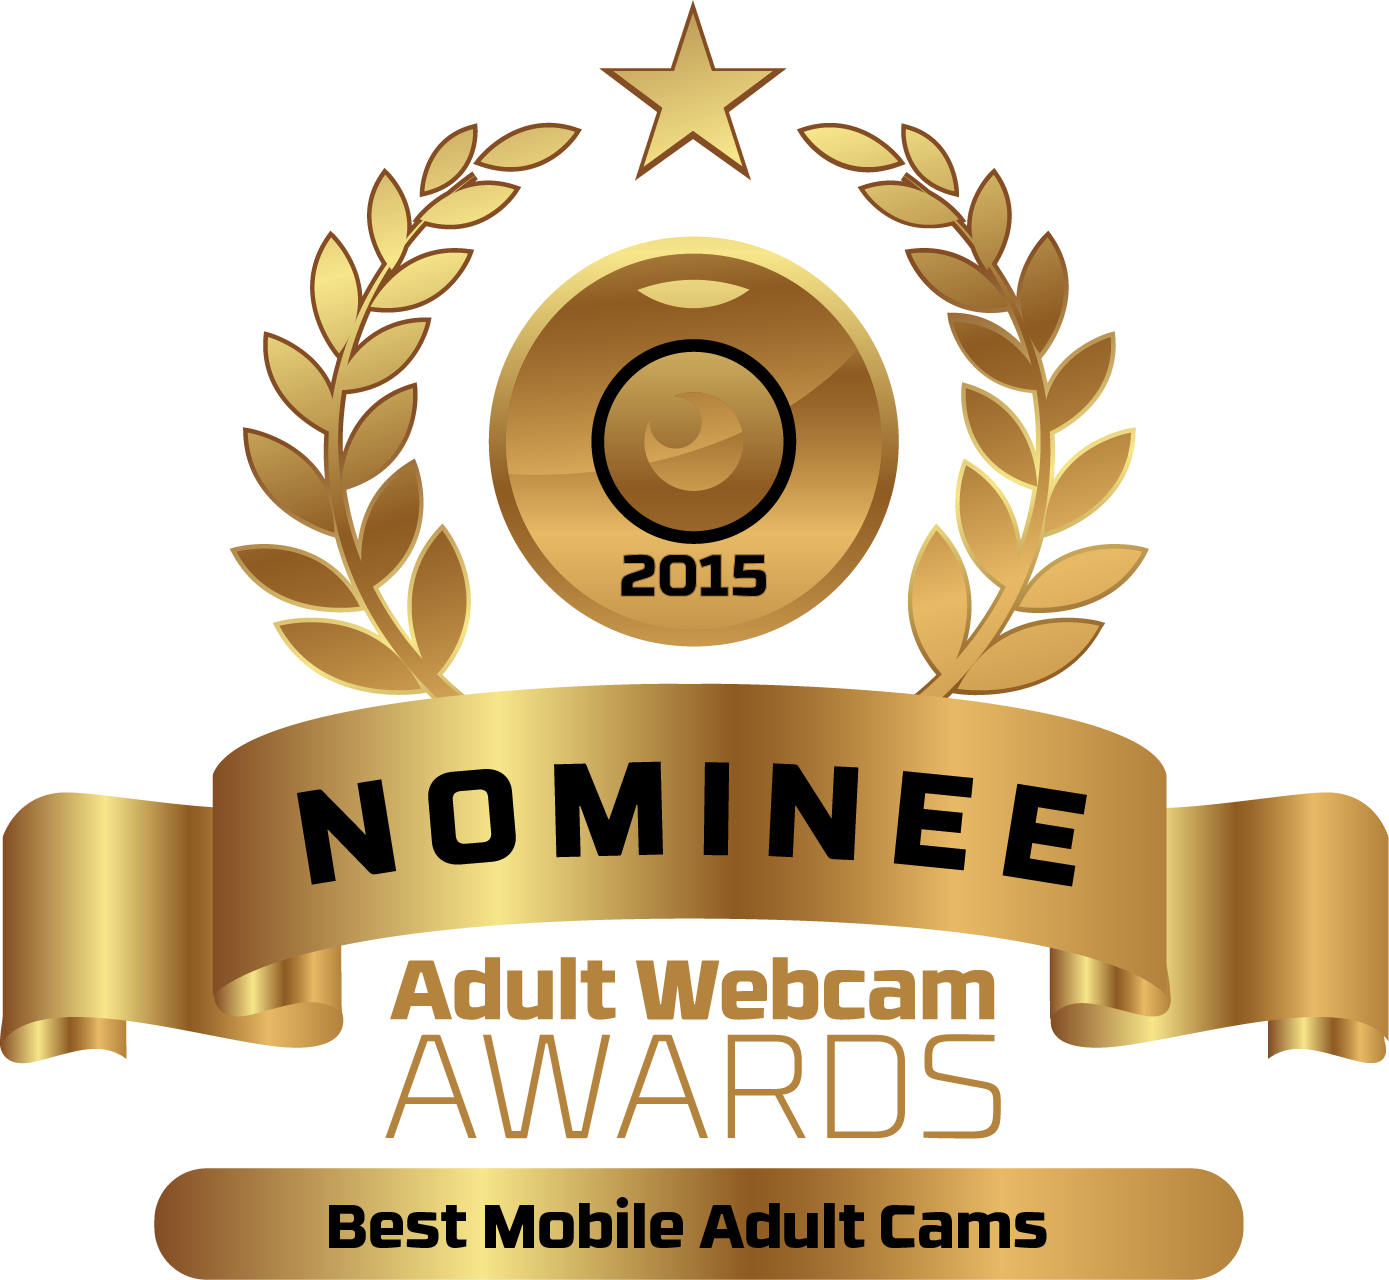 Best Mobile Adult Cam Site Nominee